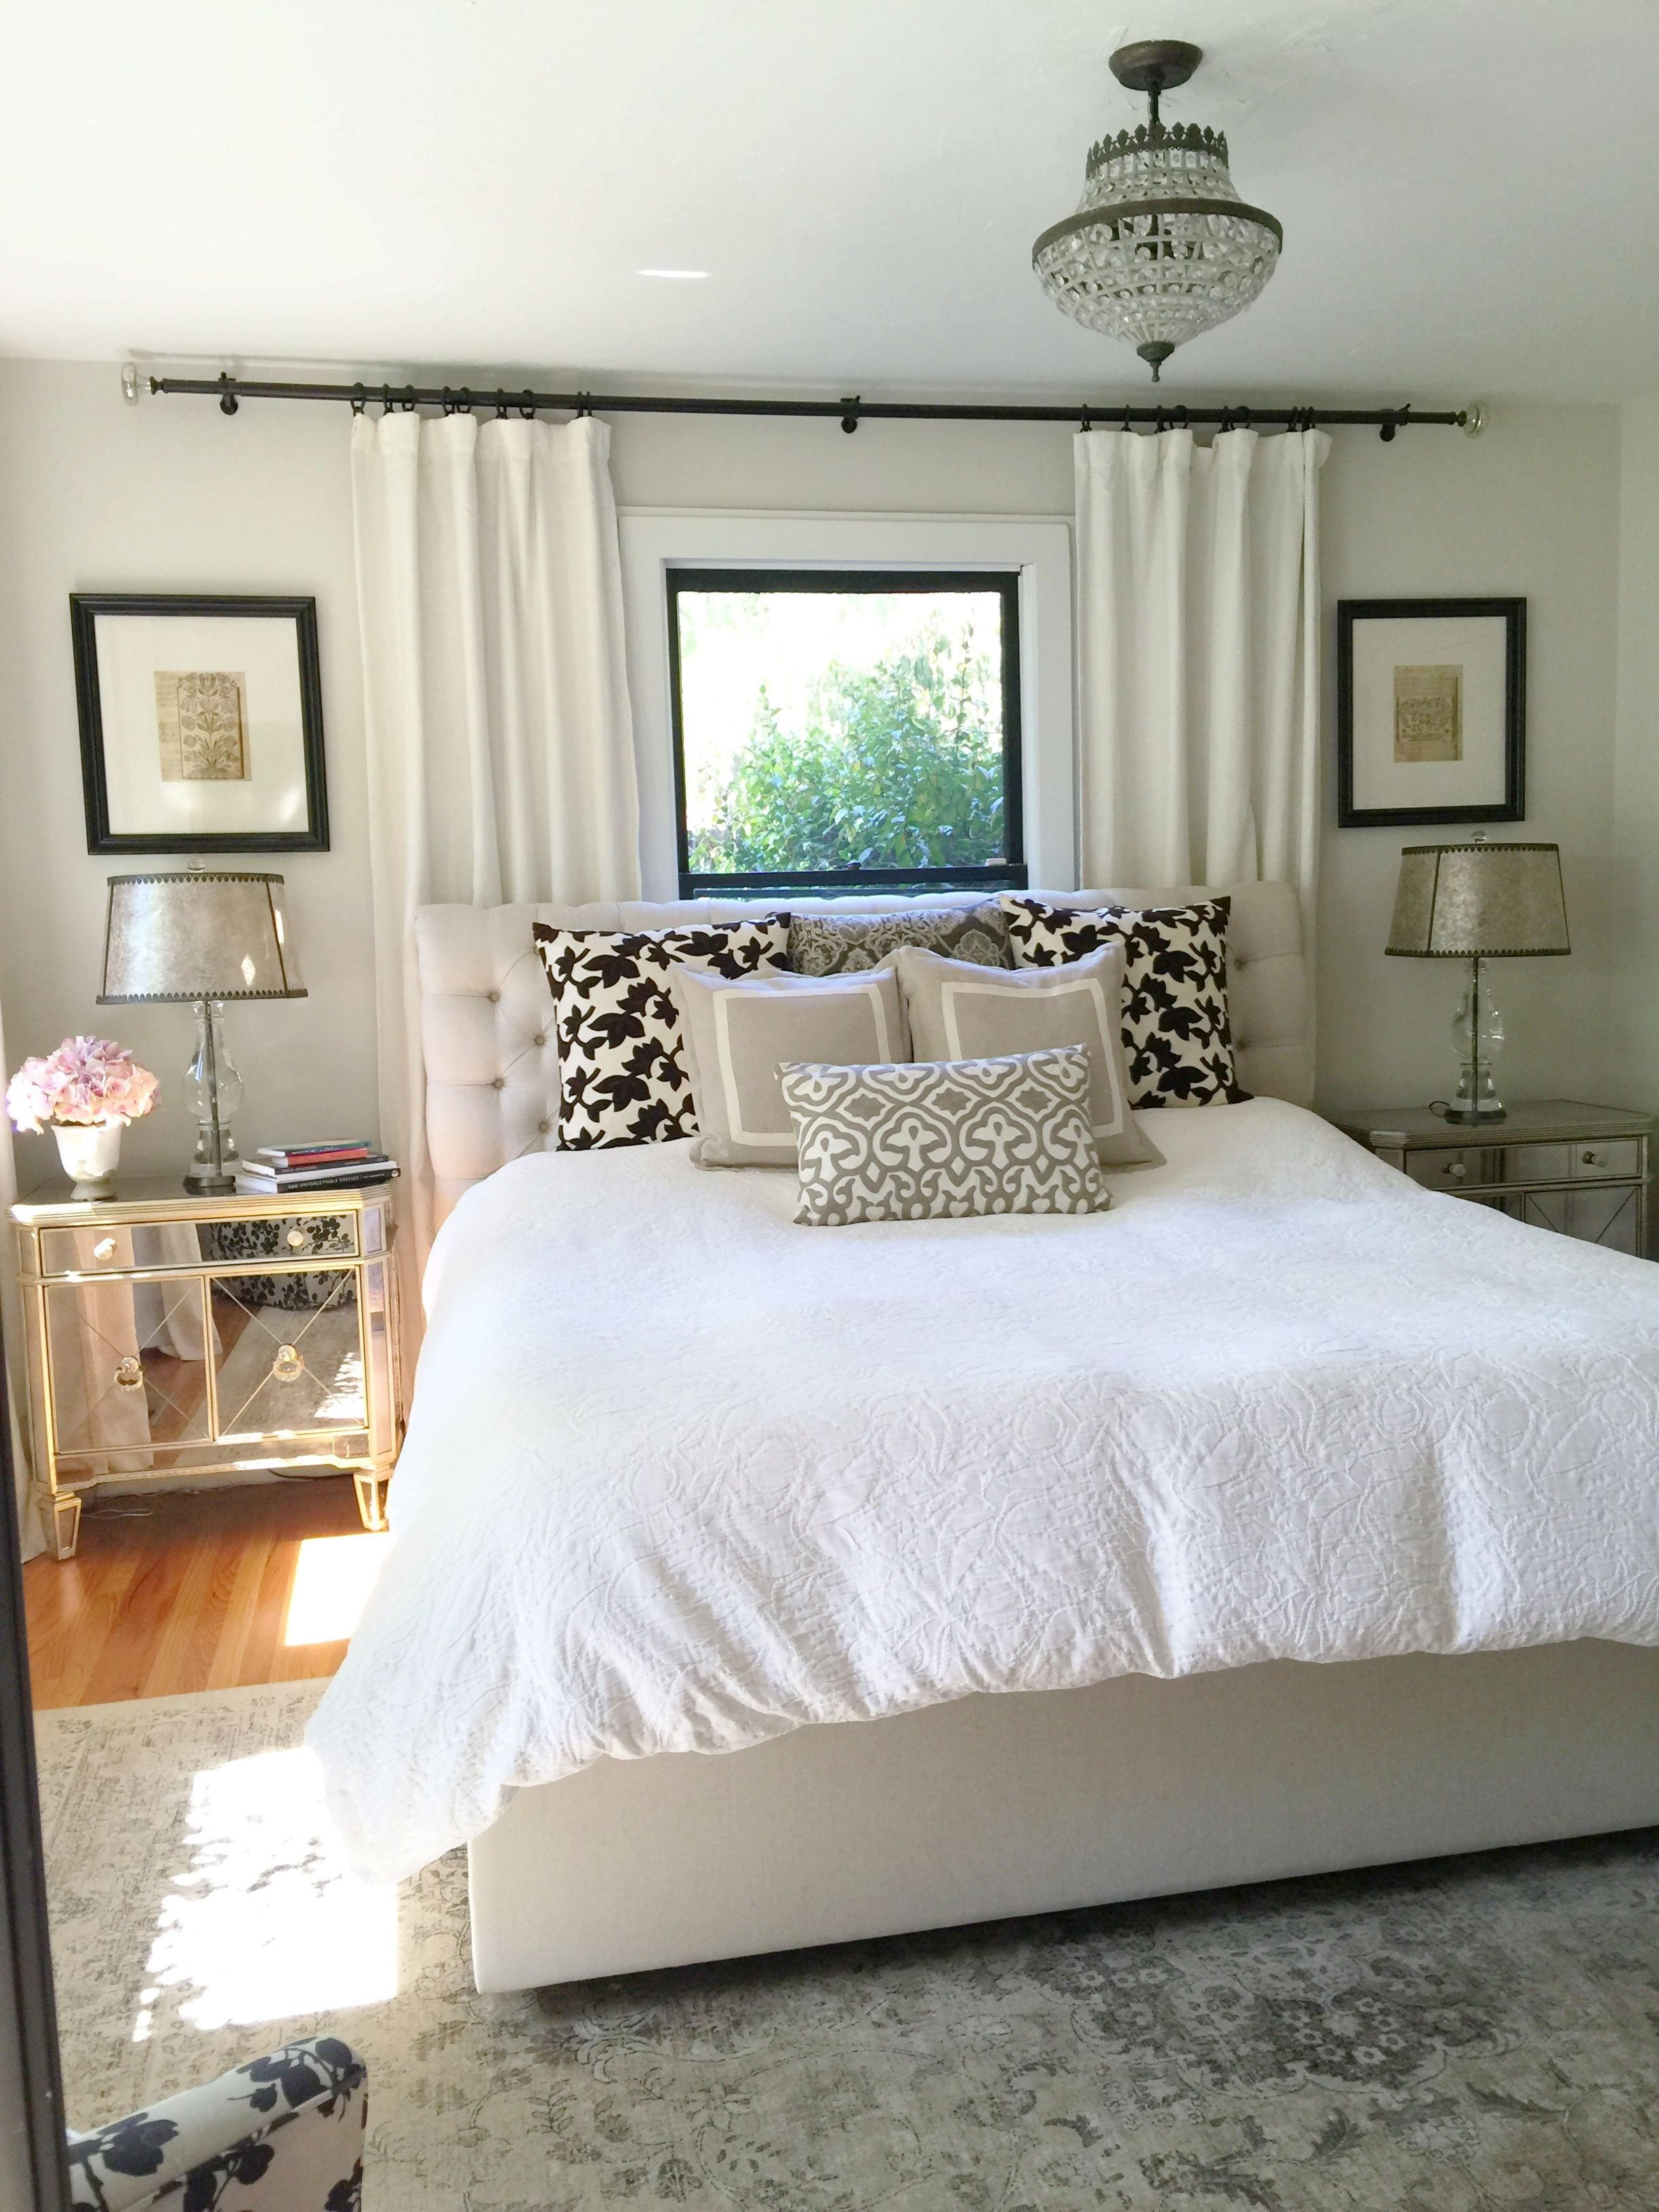 Bedroom Curtain Ideas Small Windows Fresh Neutral Bedroom Window Behind Bed Bedroom Window